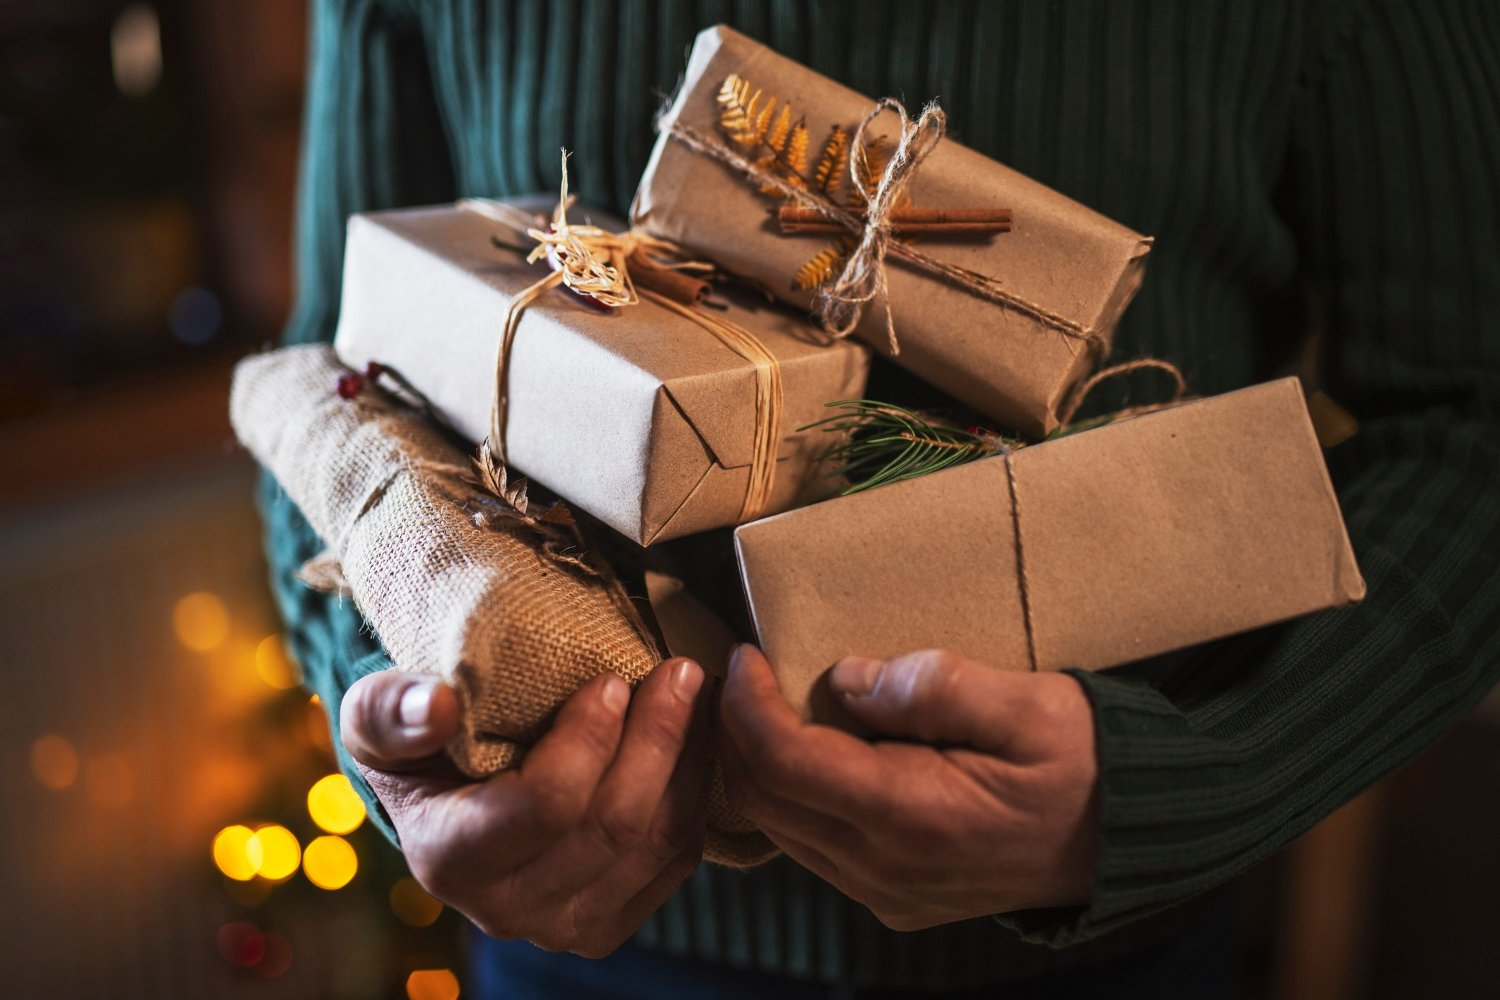 Man Holding Organic Christmas Presents. Unrecognizable male hands holding organic Christmas presents.